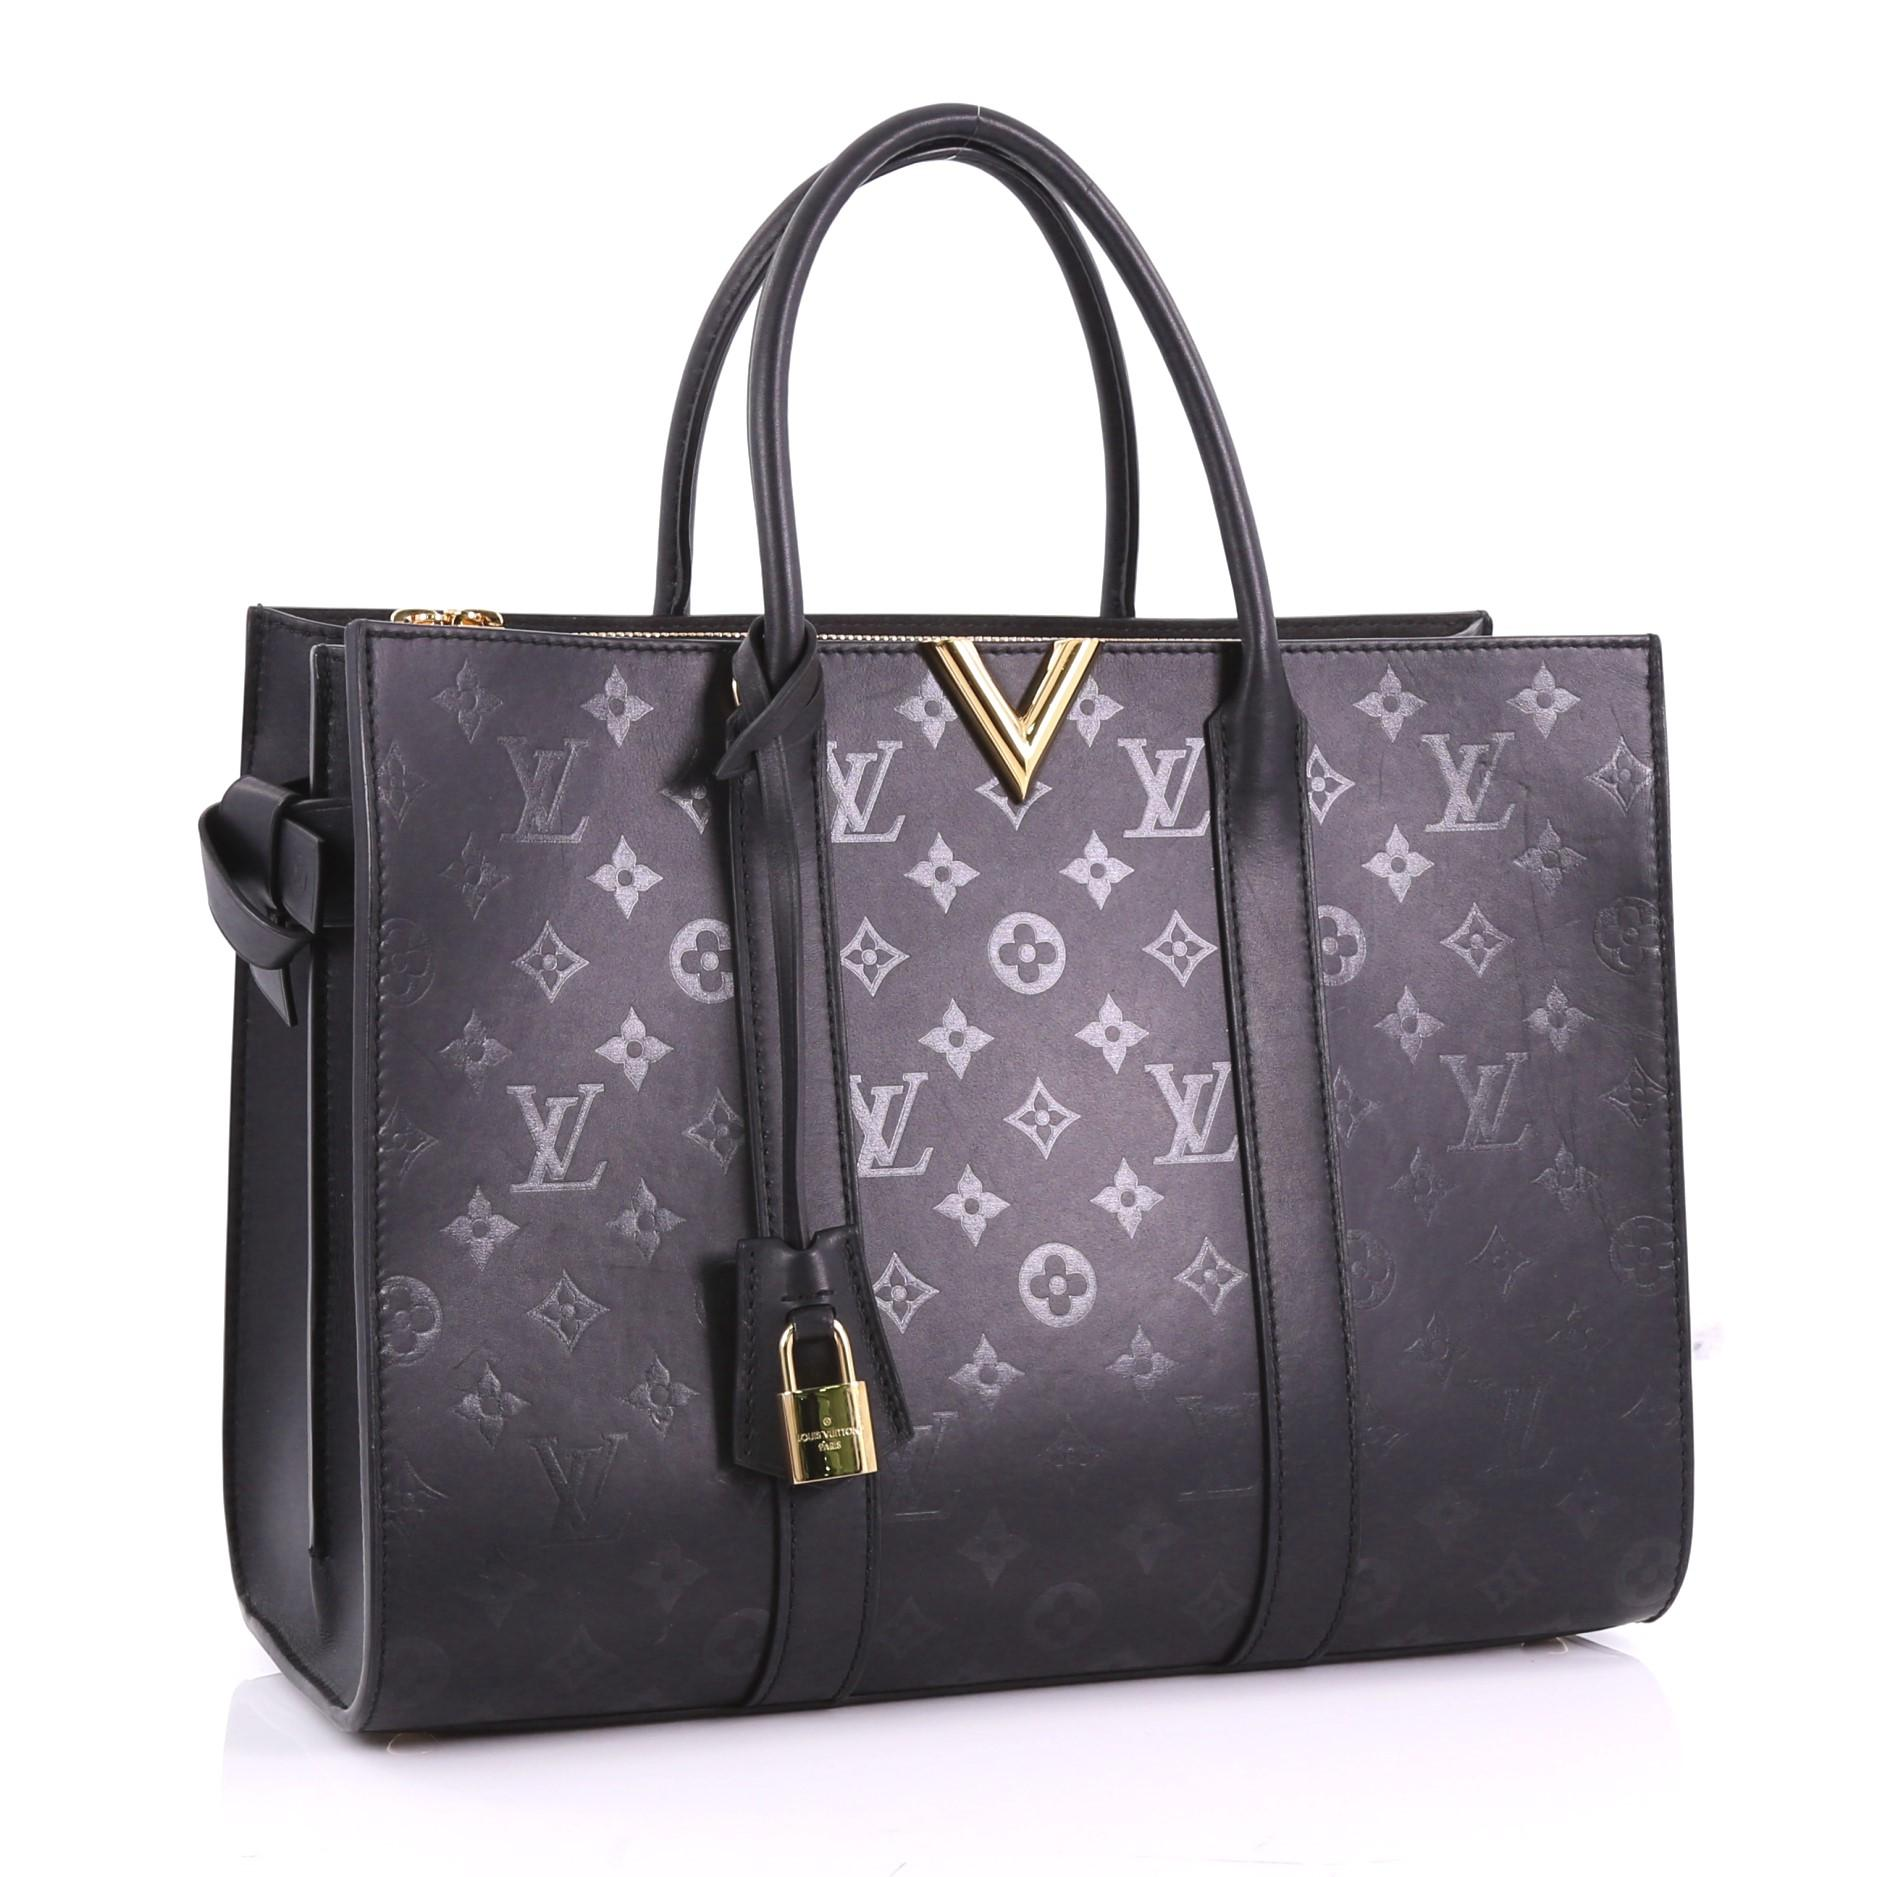 efe4657a1cb5 Louis Vuitton Very Tote Monogram Leather GM at 1stdibs